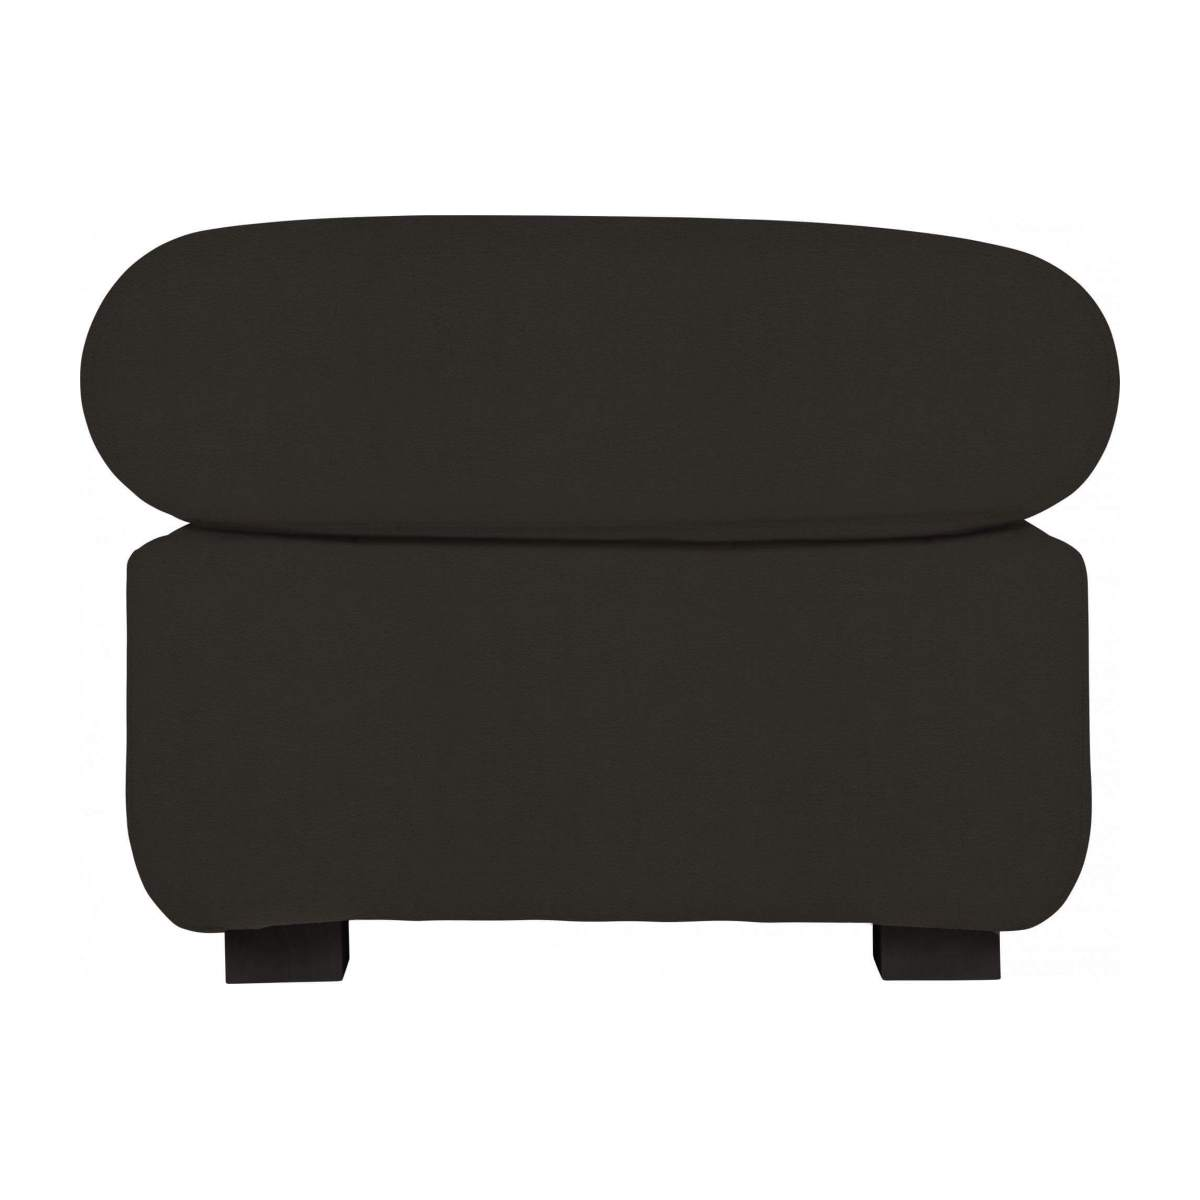 Leather footstool n°4